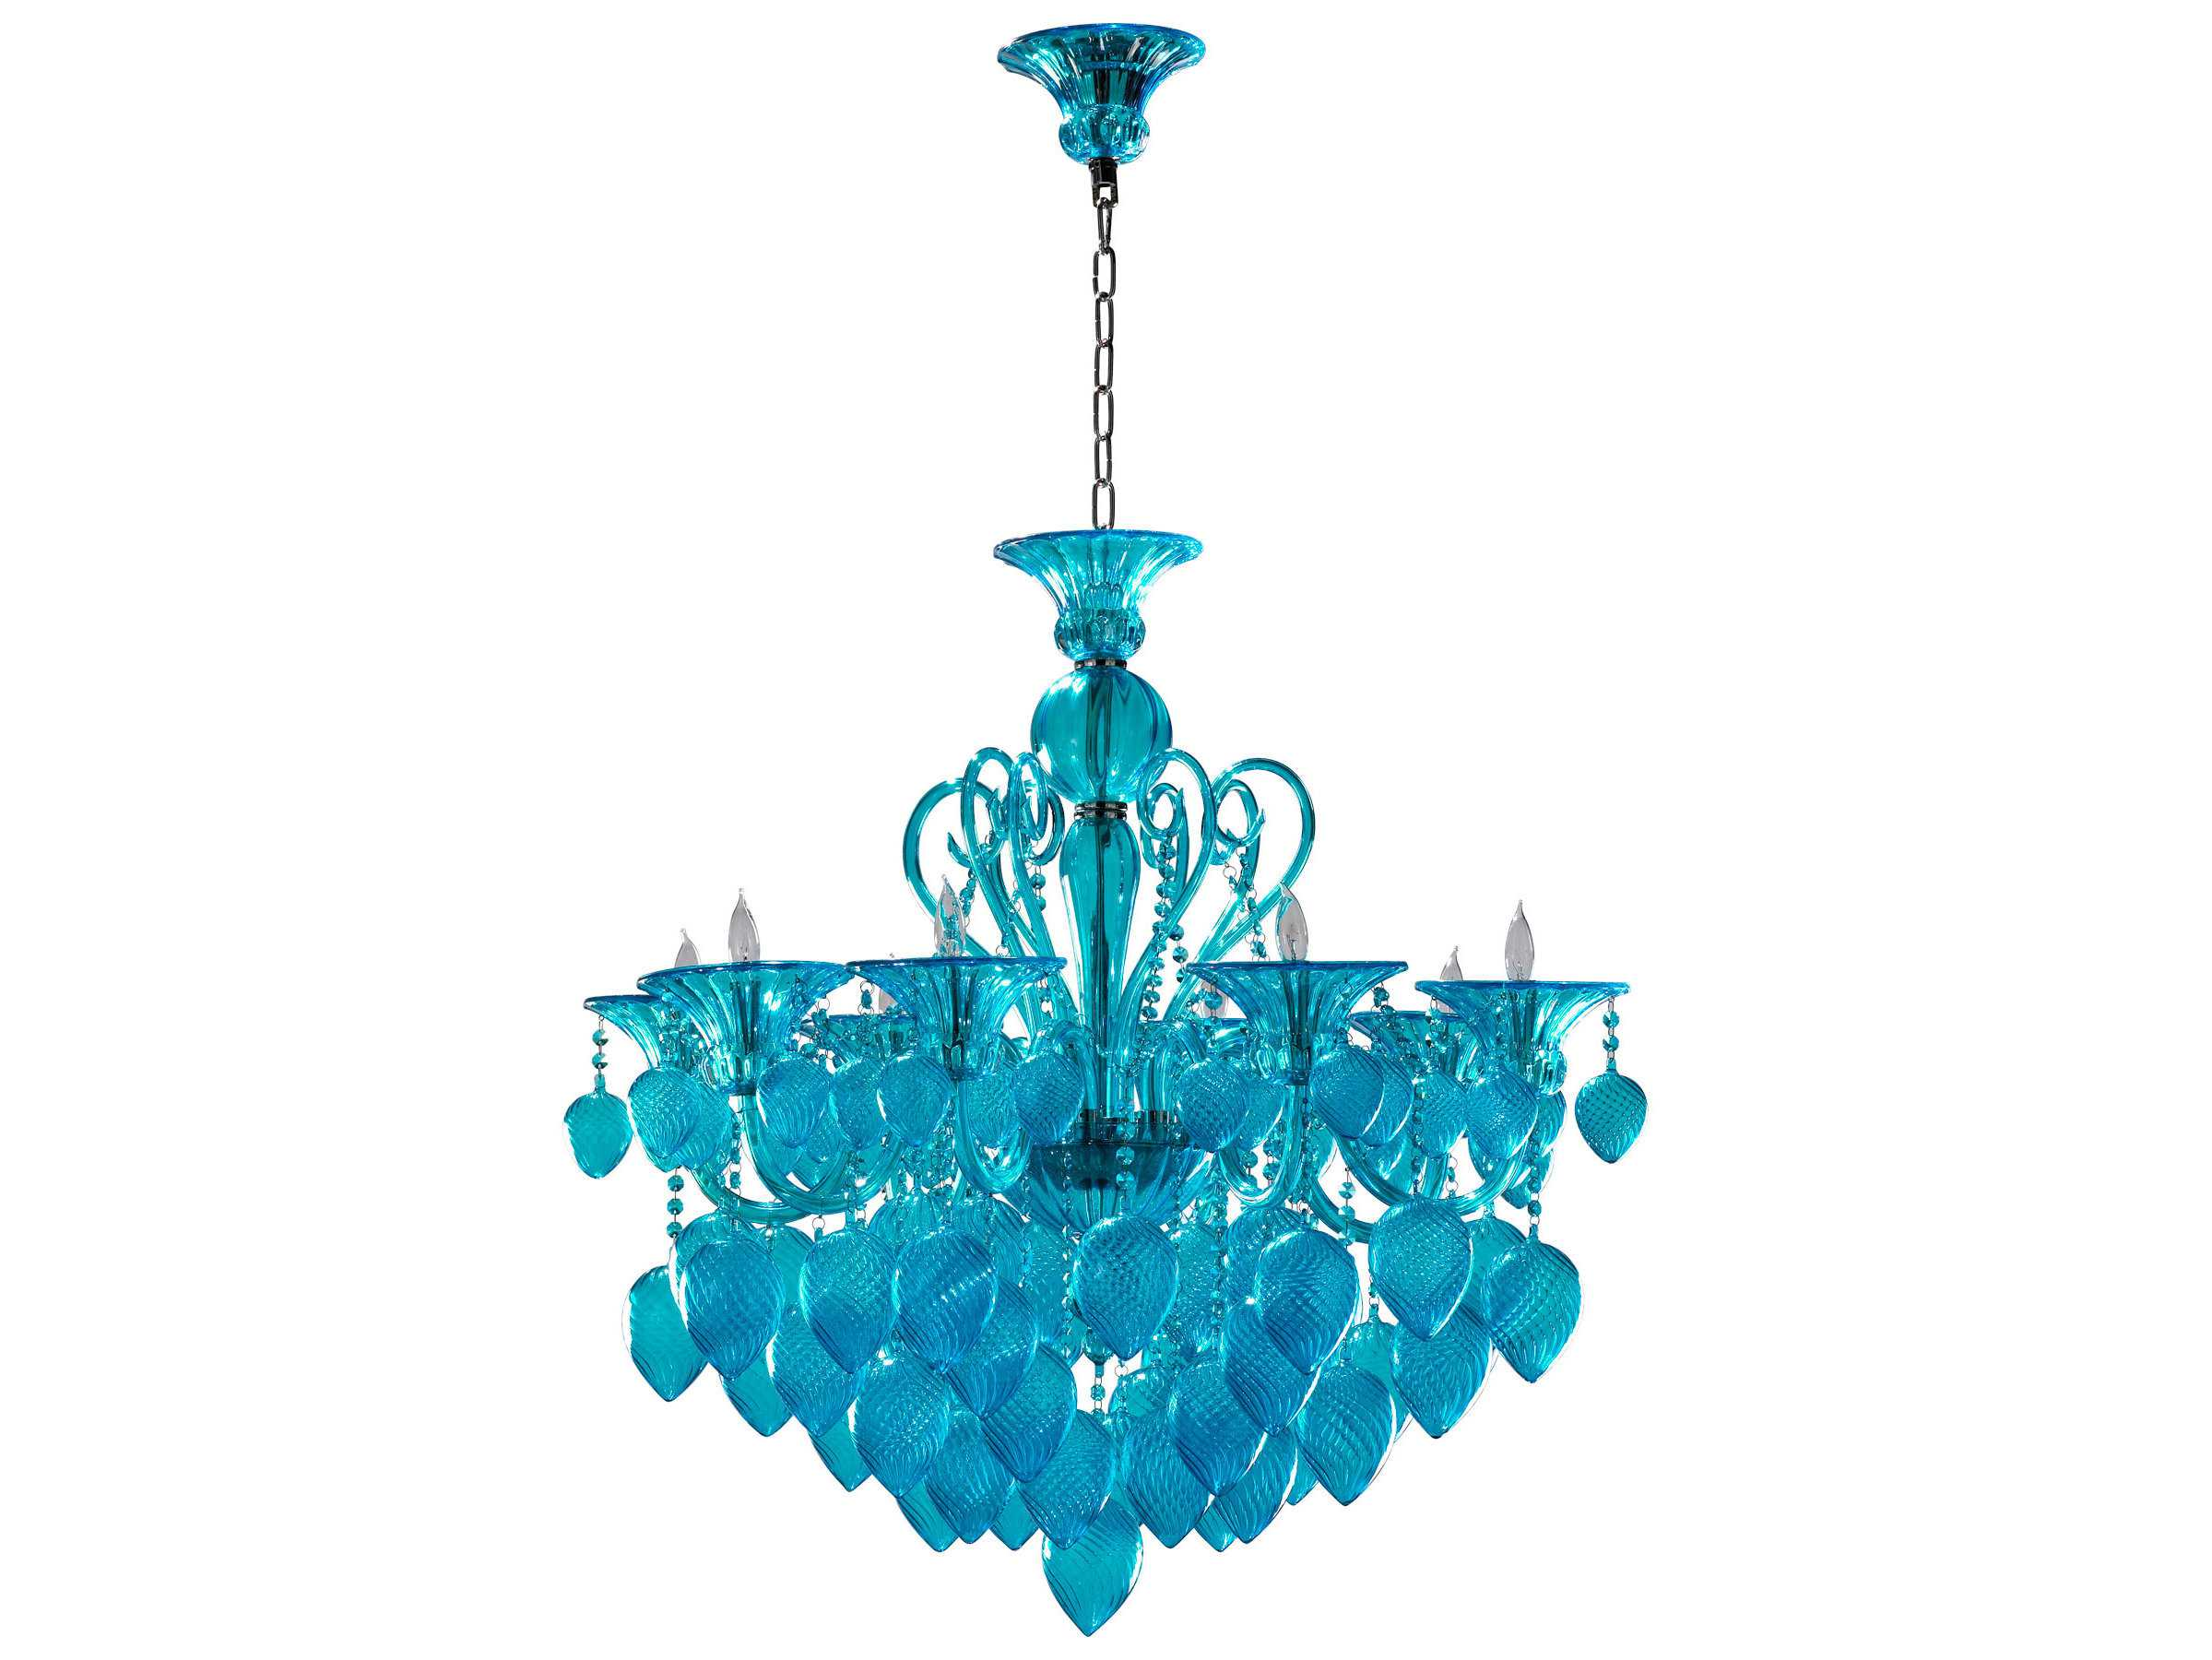 Aqua Glass Chandelier